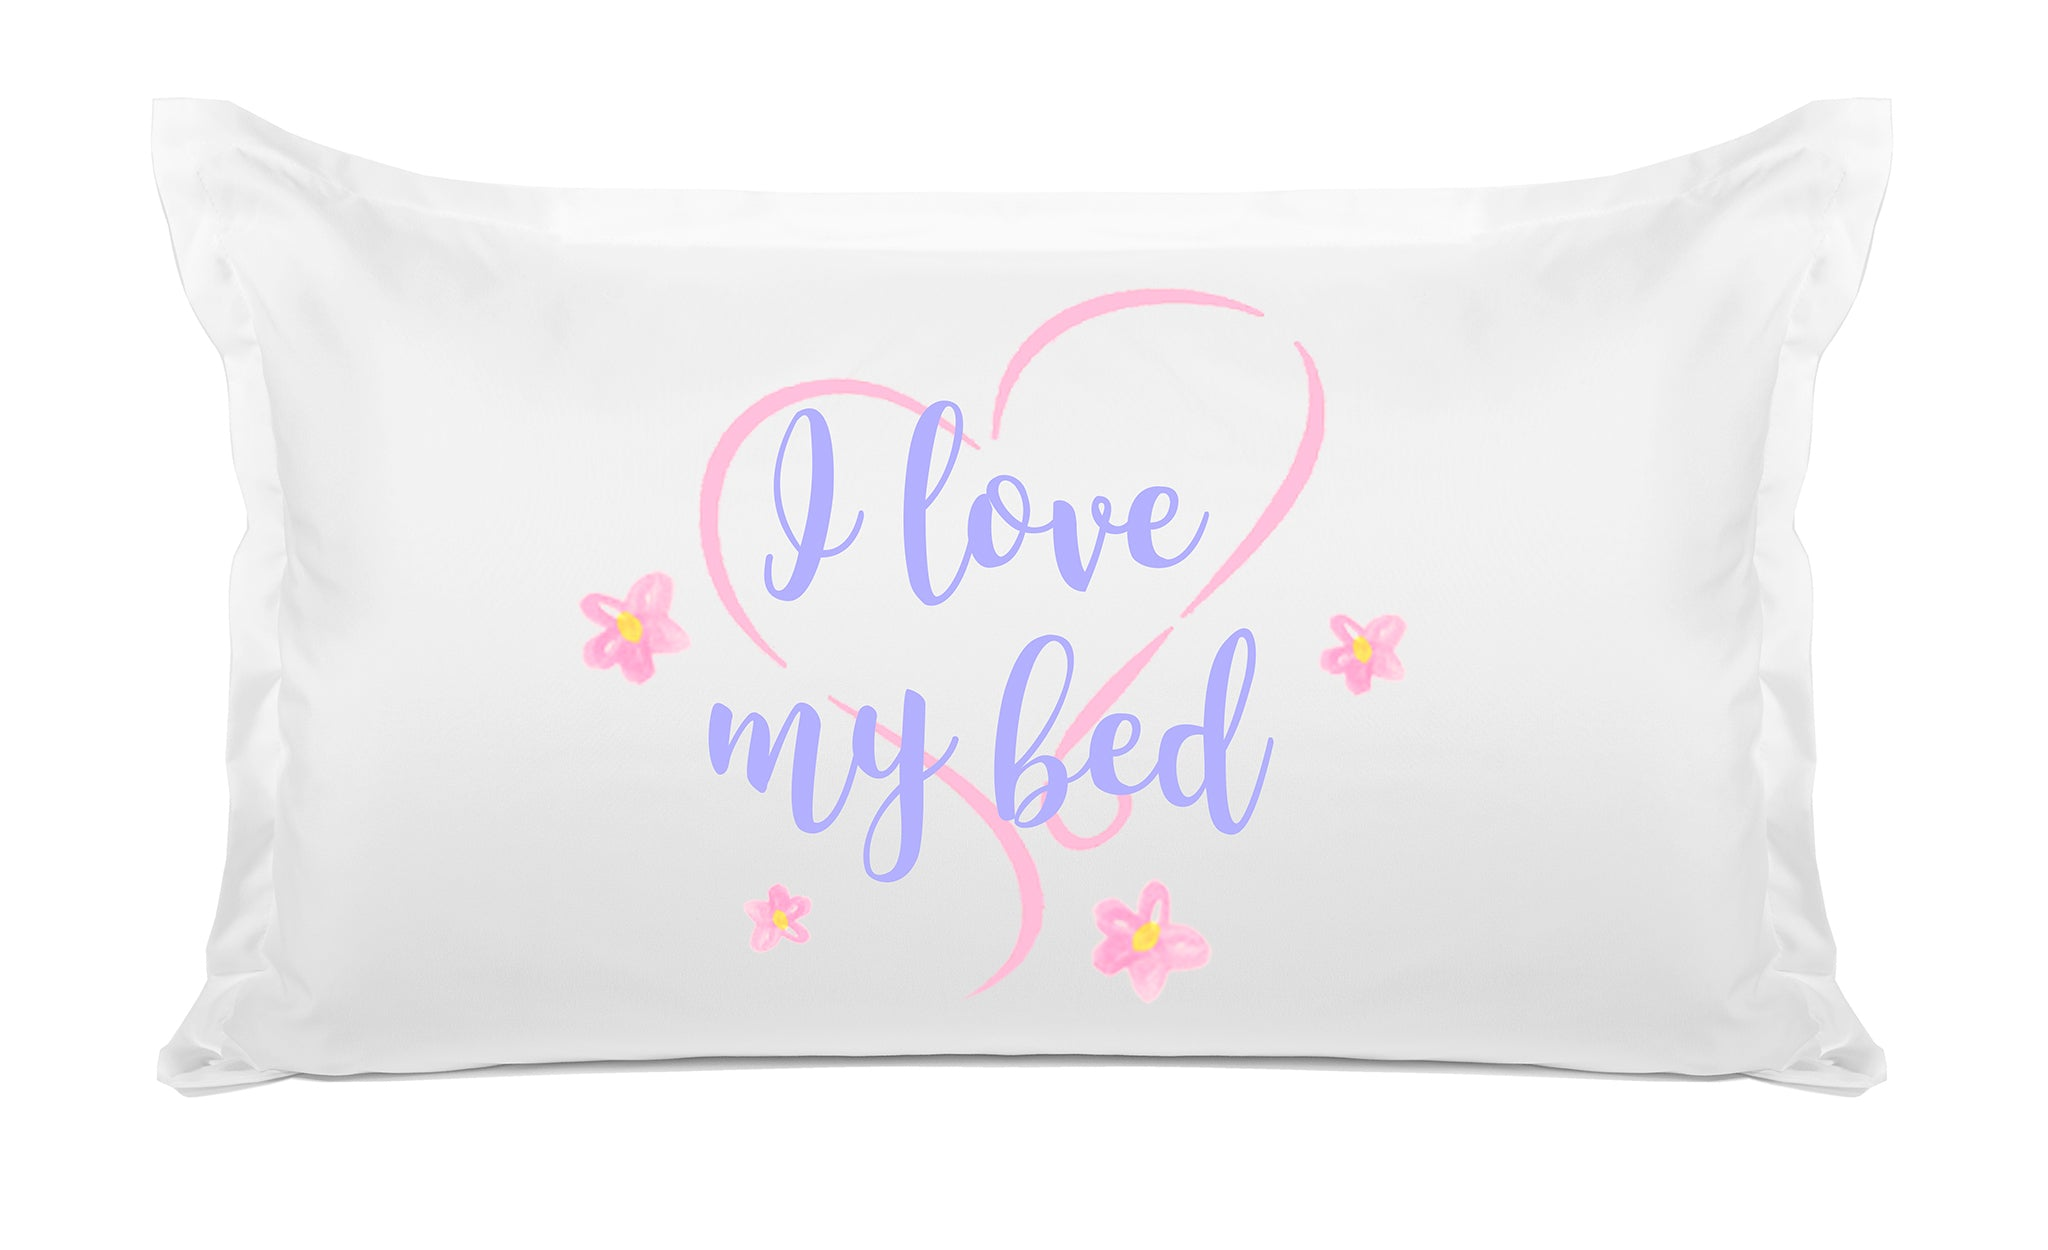 I Love My Bed Pillow Cases Quote Pillows Di Lewis